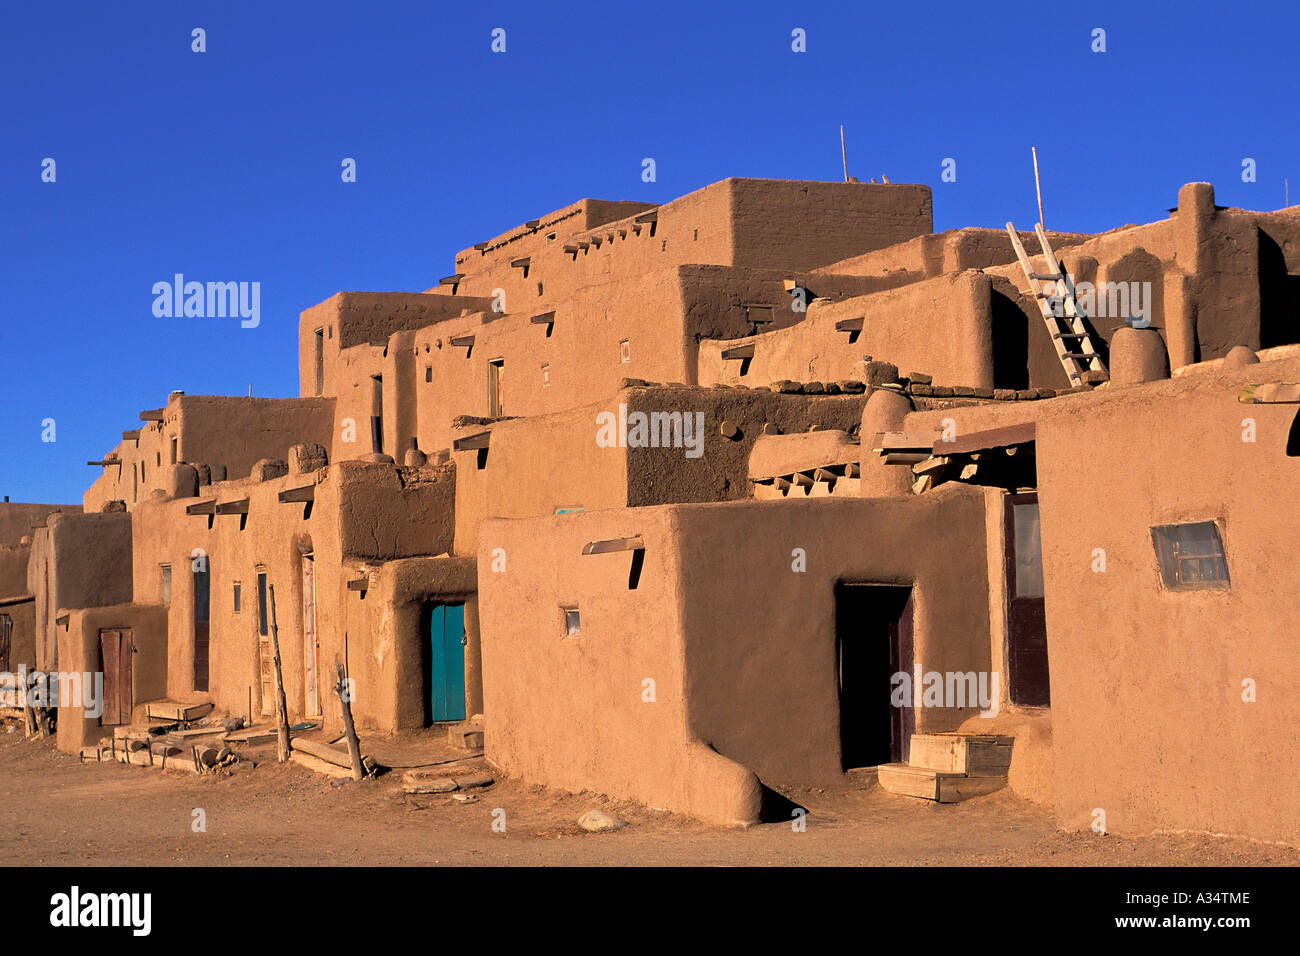 Taos pueblo native american community adobe homes taos new mexico usa stock photo royalty free - Pueblo adobe houses property ...